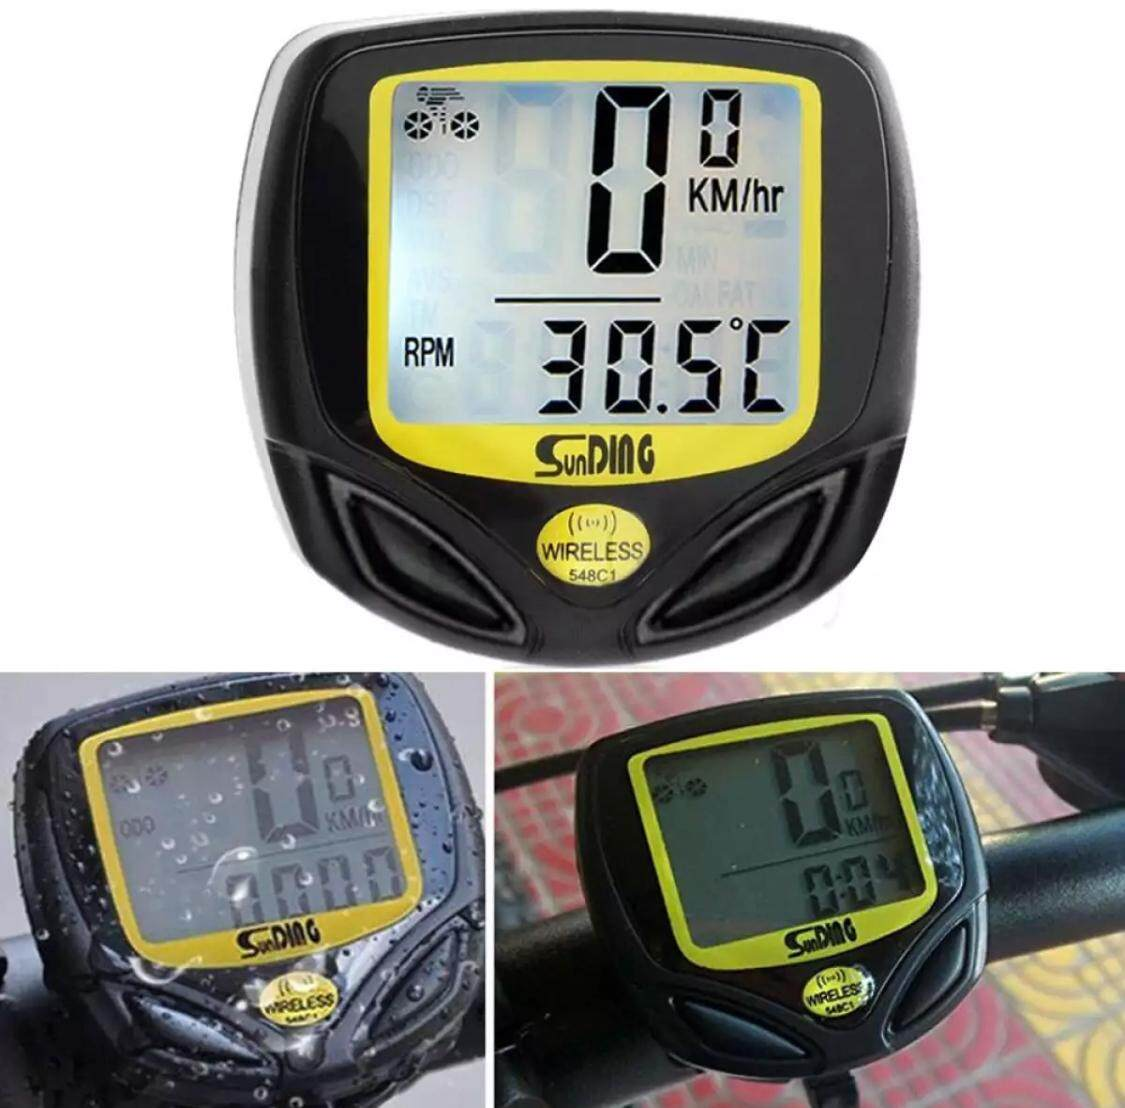 New Wireless Bicycle Cycling Computer Speedometer Odometer Meter Cycling Meter Waterproof Bicycle Speedometer Wireless By Exadeal.